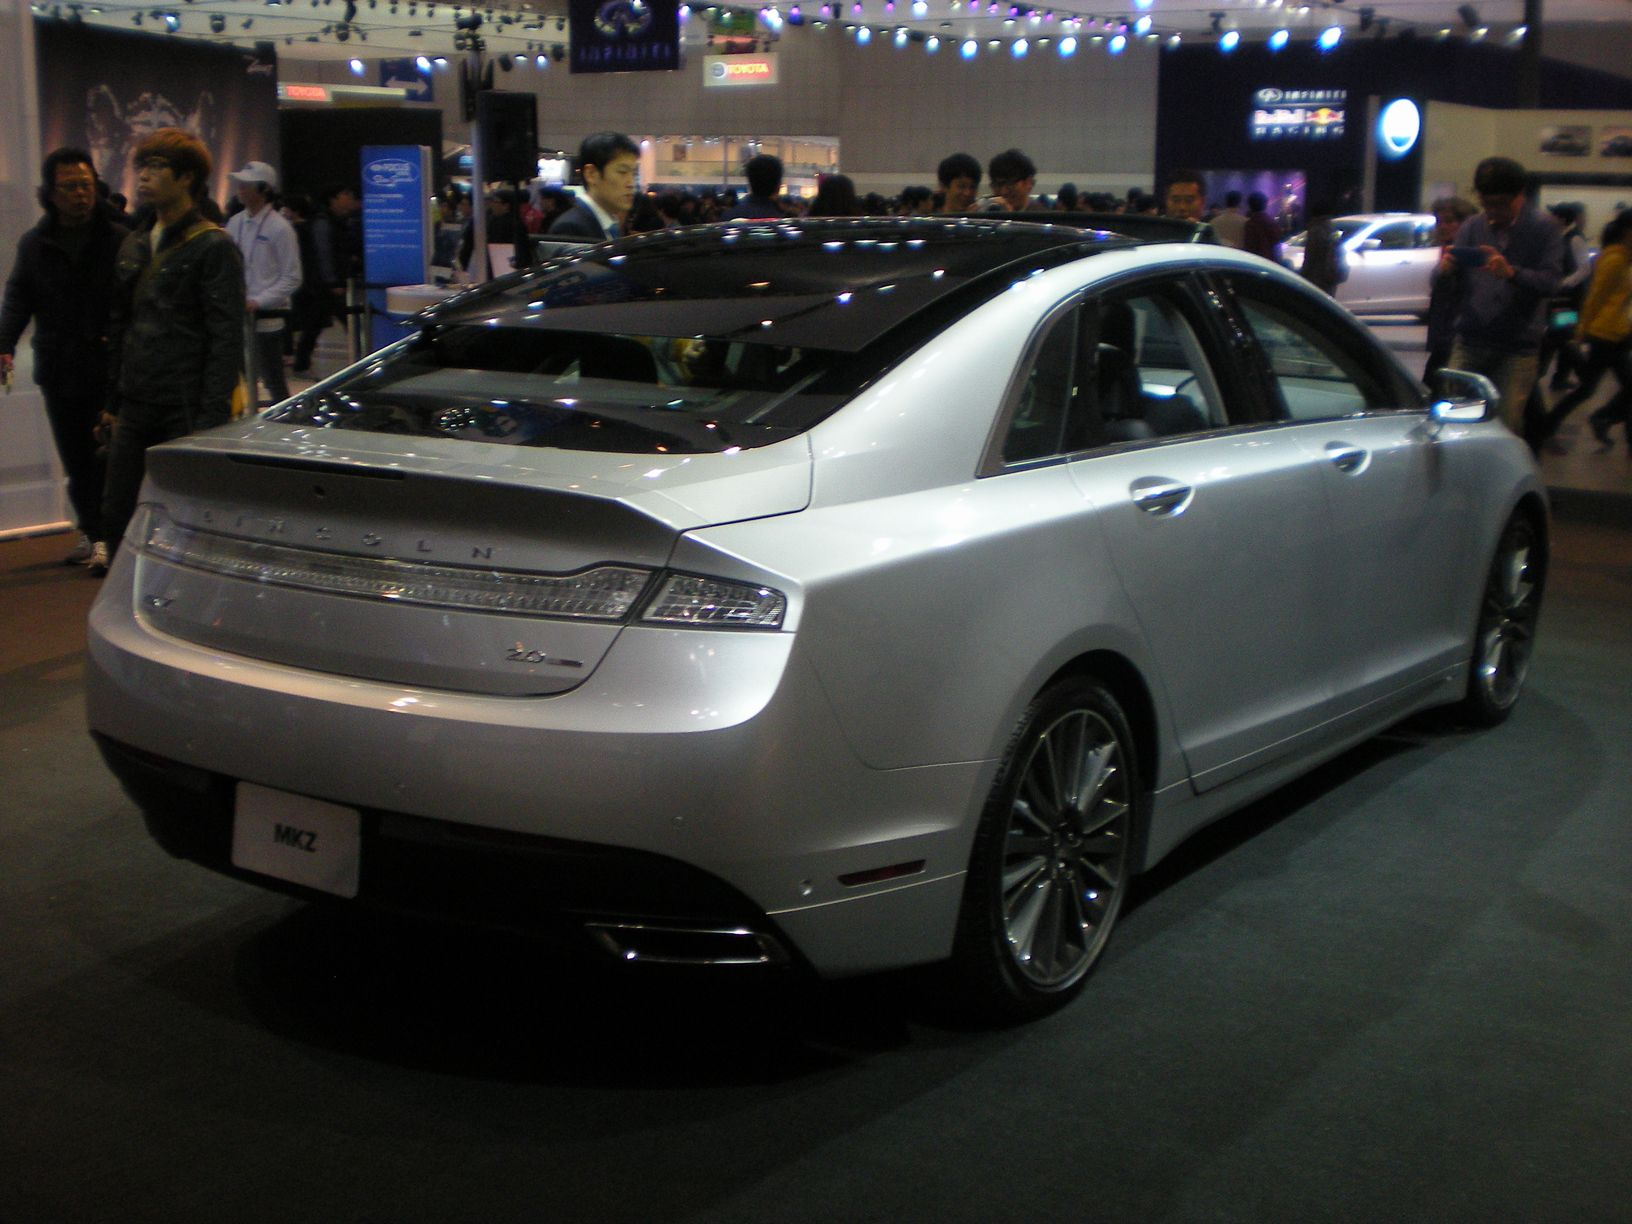 2013 Lincoln Mkz >> File:LINCOLN MKZ 2013 SMS 02.JPG - Wikimedia Commons